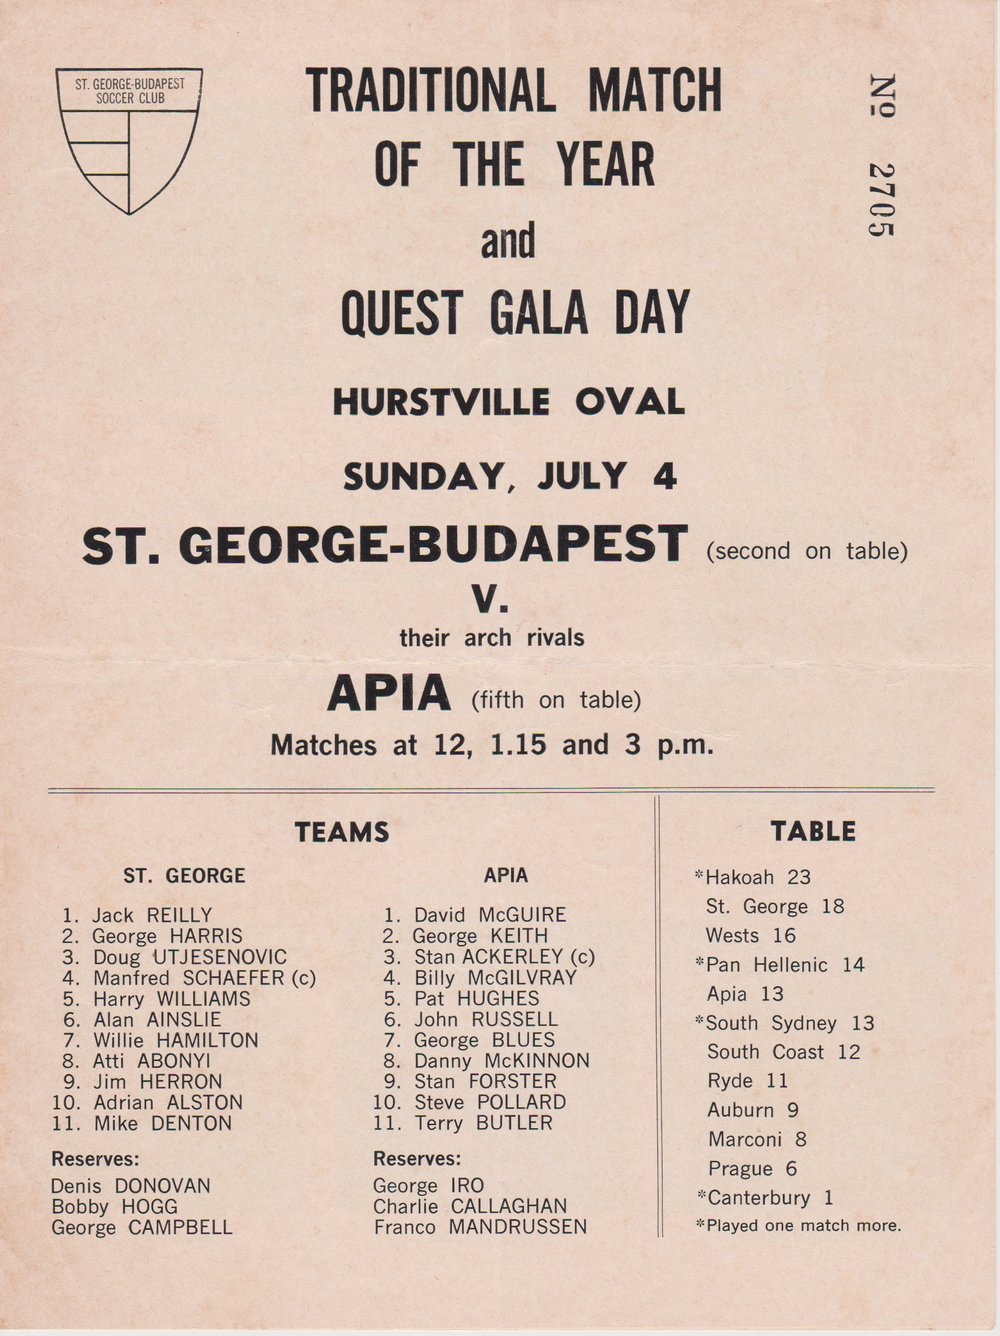 - With Football NSW celebrating Heritage Round in the NPL1 this weekend, it is worthwhile to take a look back at one of our most famous St George teams of all time, that of 1971.The Saints were at the peak of their powers during that period, and here we have a look at a match program from those heady days, a fixture against arch rivals APIA.  The Saints included six players in the starting eleven who would travel to West Germany to represent Australia in the World Cup three years later (Jack Reilly, Doug Utjesenovic, Manfred Schaefer, Harry Williams, Atti Abonyi and Adrian Alston), while George Harris was only a whisker away from making the squad.We played at Hurstville Oval in those days before moving to St George Stadium upon its opening in 1978. Our last game at Hurstville Oval was in the (national) Philips Soccer League in 1977, with only the one game played there (most games being played otherwise at the Sydney Sports Ground). Here is the program from that match, a fixture against Fitzroy United (renamed Heidelberg United a year later). Included in the Fitzroy side was Gary Cole, a striker who went on to hold the Australian record for the number of goals in an international, when he scored 7 in a game against Fiji, in 1981. That record was of course beaten famously by Archie Thompson's 13 goals against American Samoa in 2001.For St George, ex-Arsenal legend Charlie George played as a loan player for six matches that season.